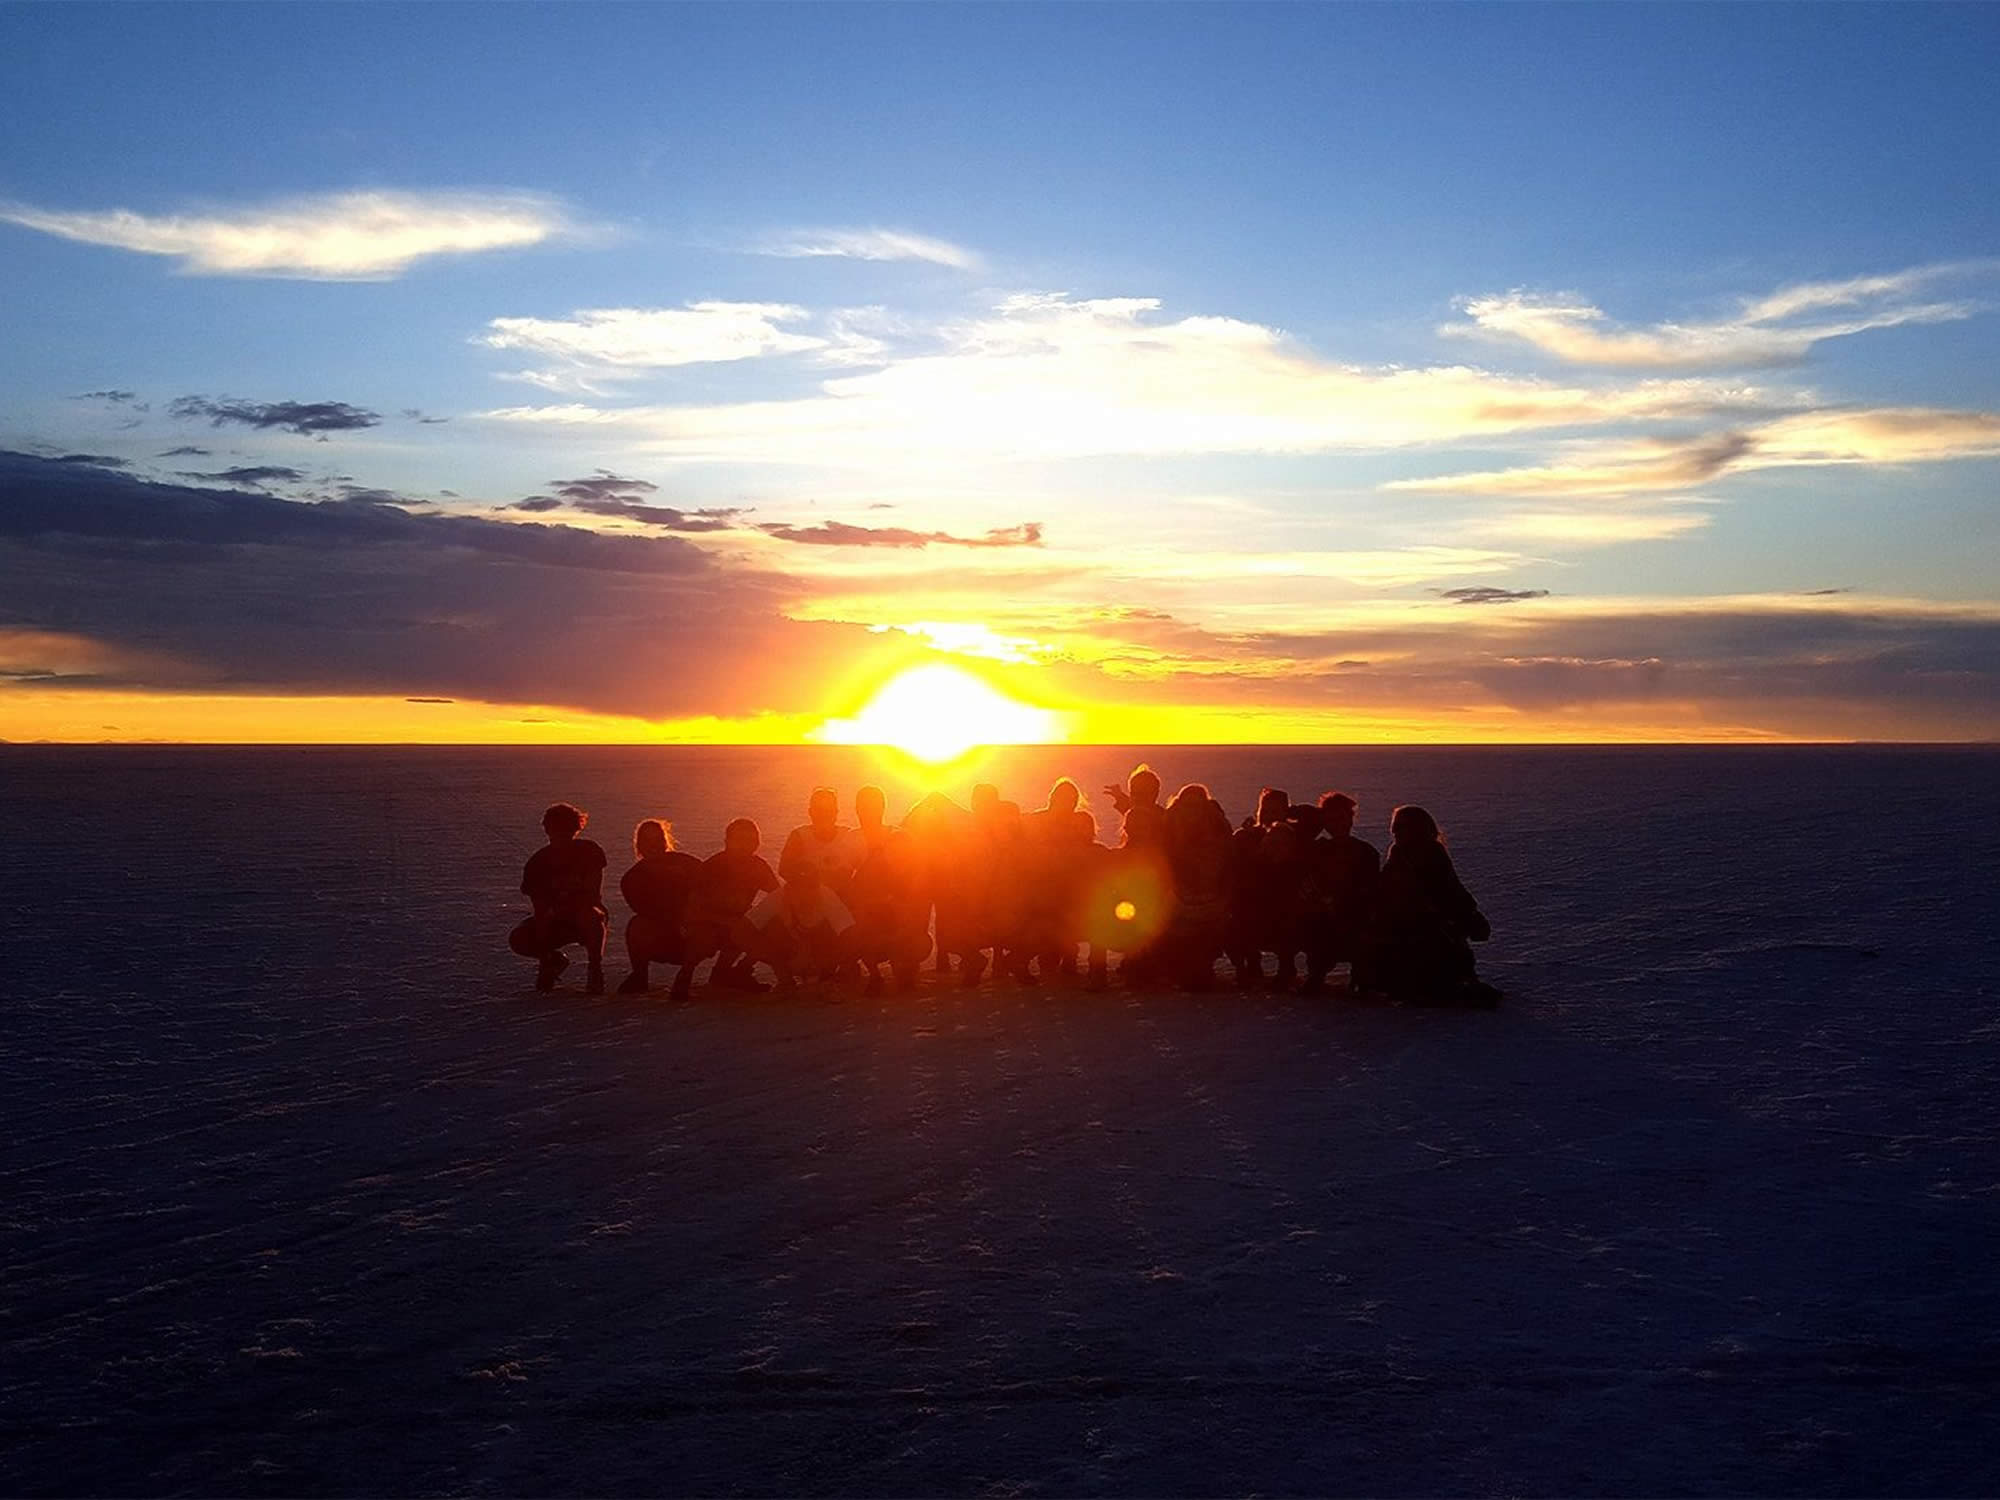 Sunrise in the Salar de Uyuni